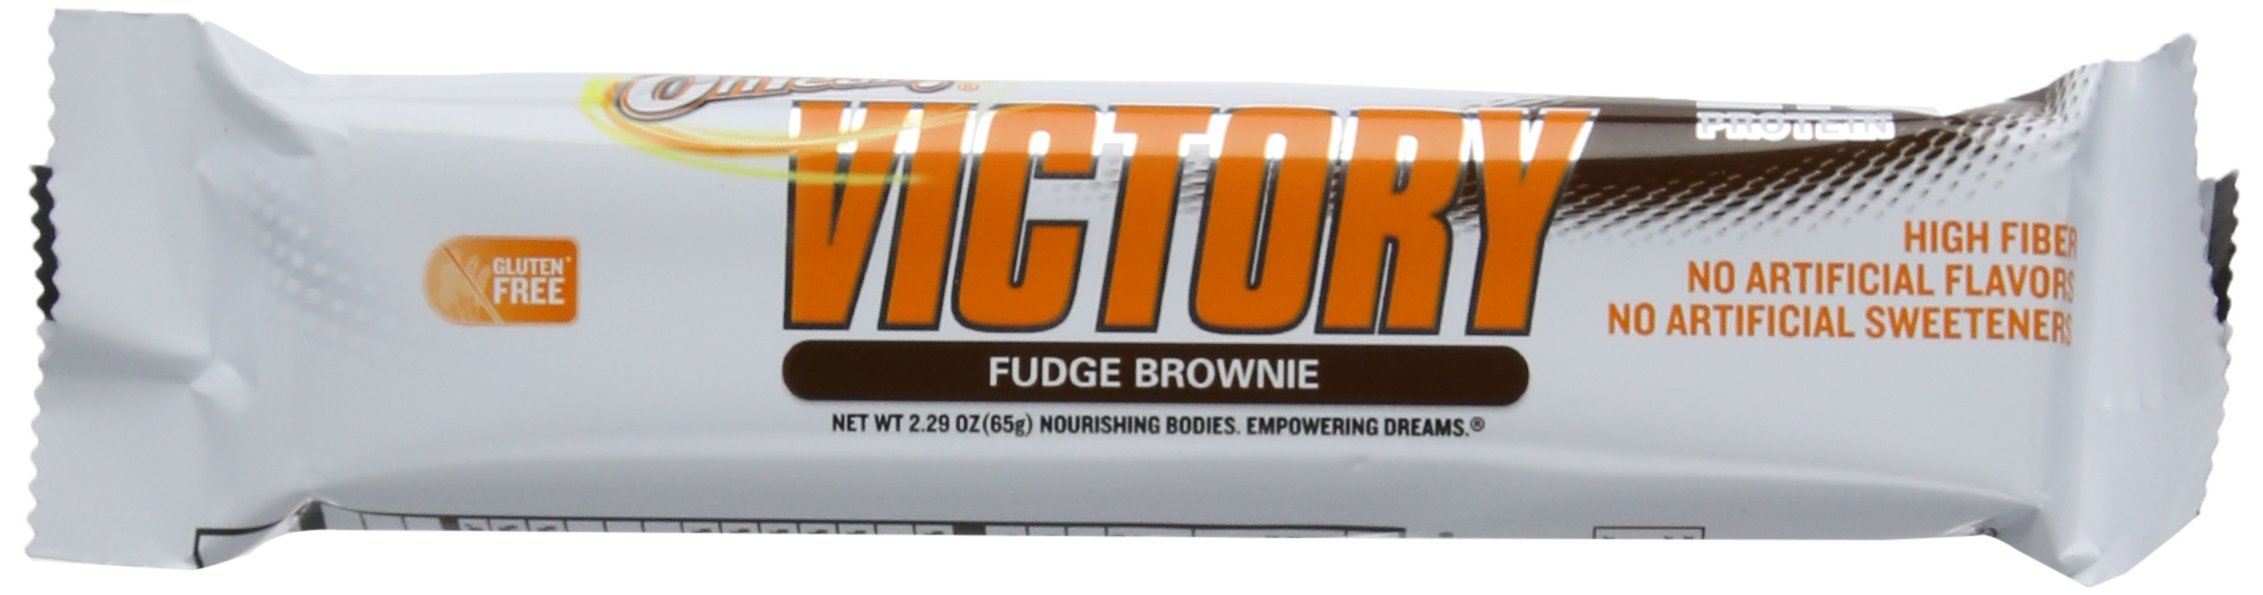 OhYeah! Victory Bars, Fudge Brownie, 12 Count, 2.29 Ounce